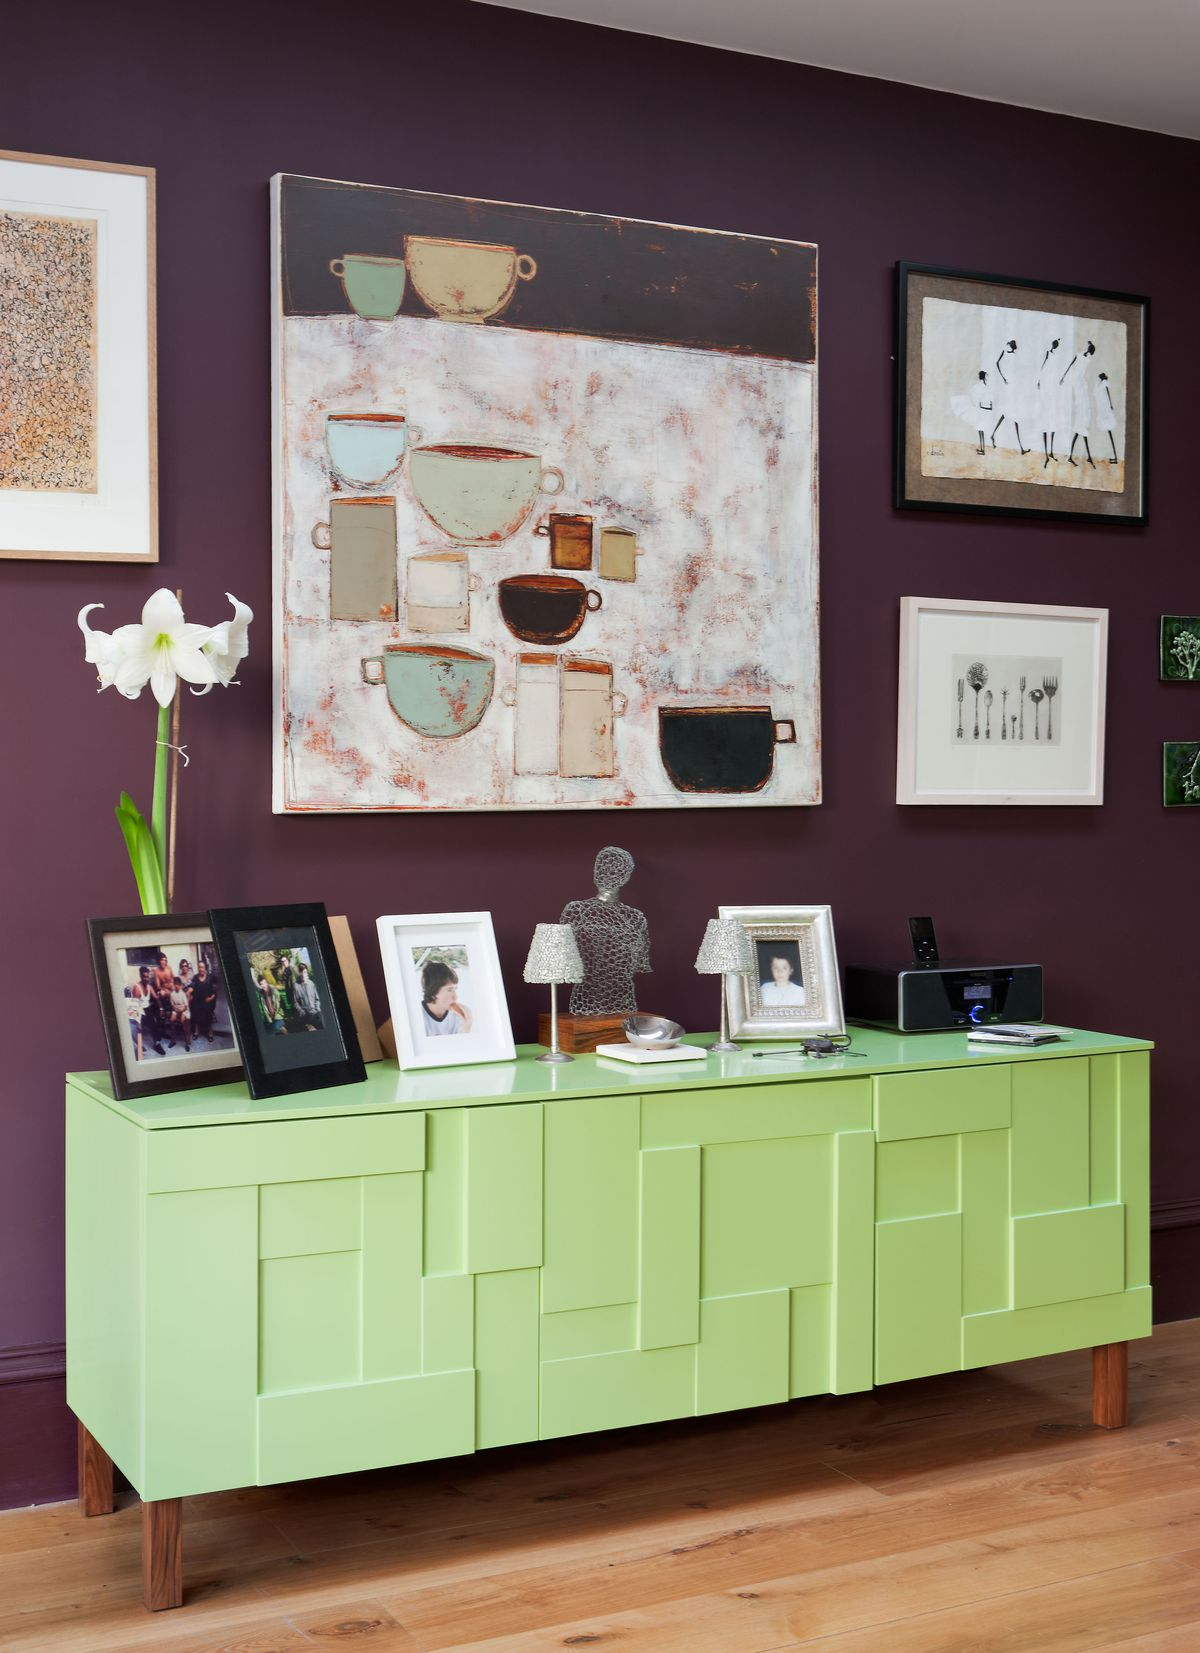 Red-violet wall with a yellow-green cabinet.